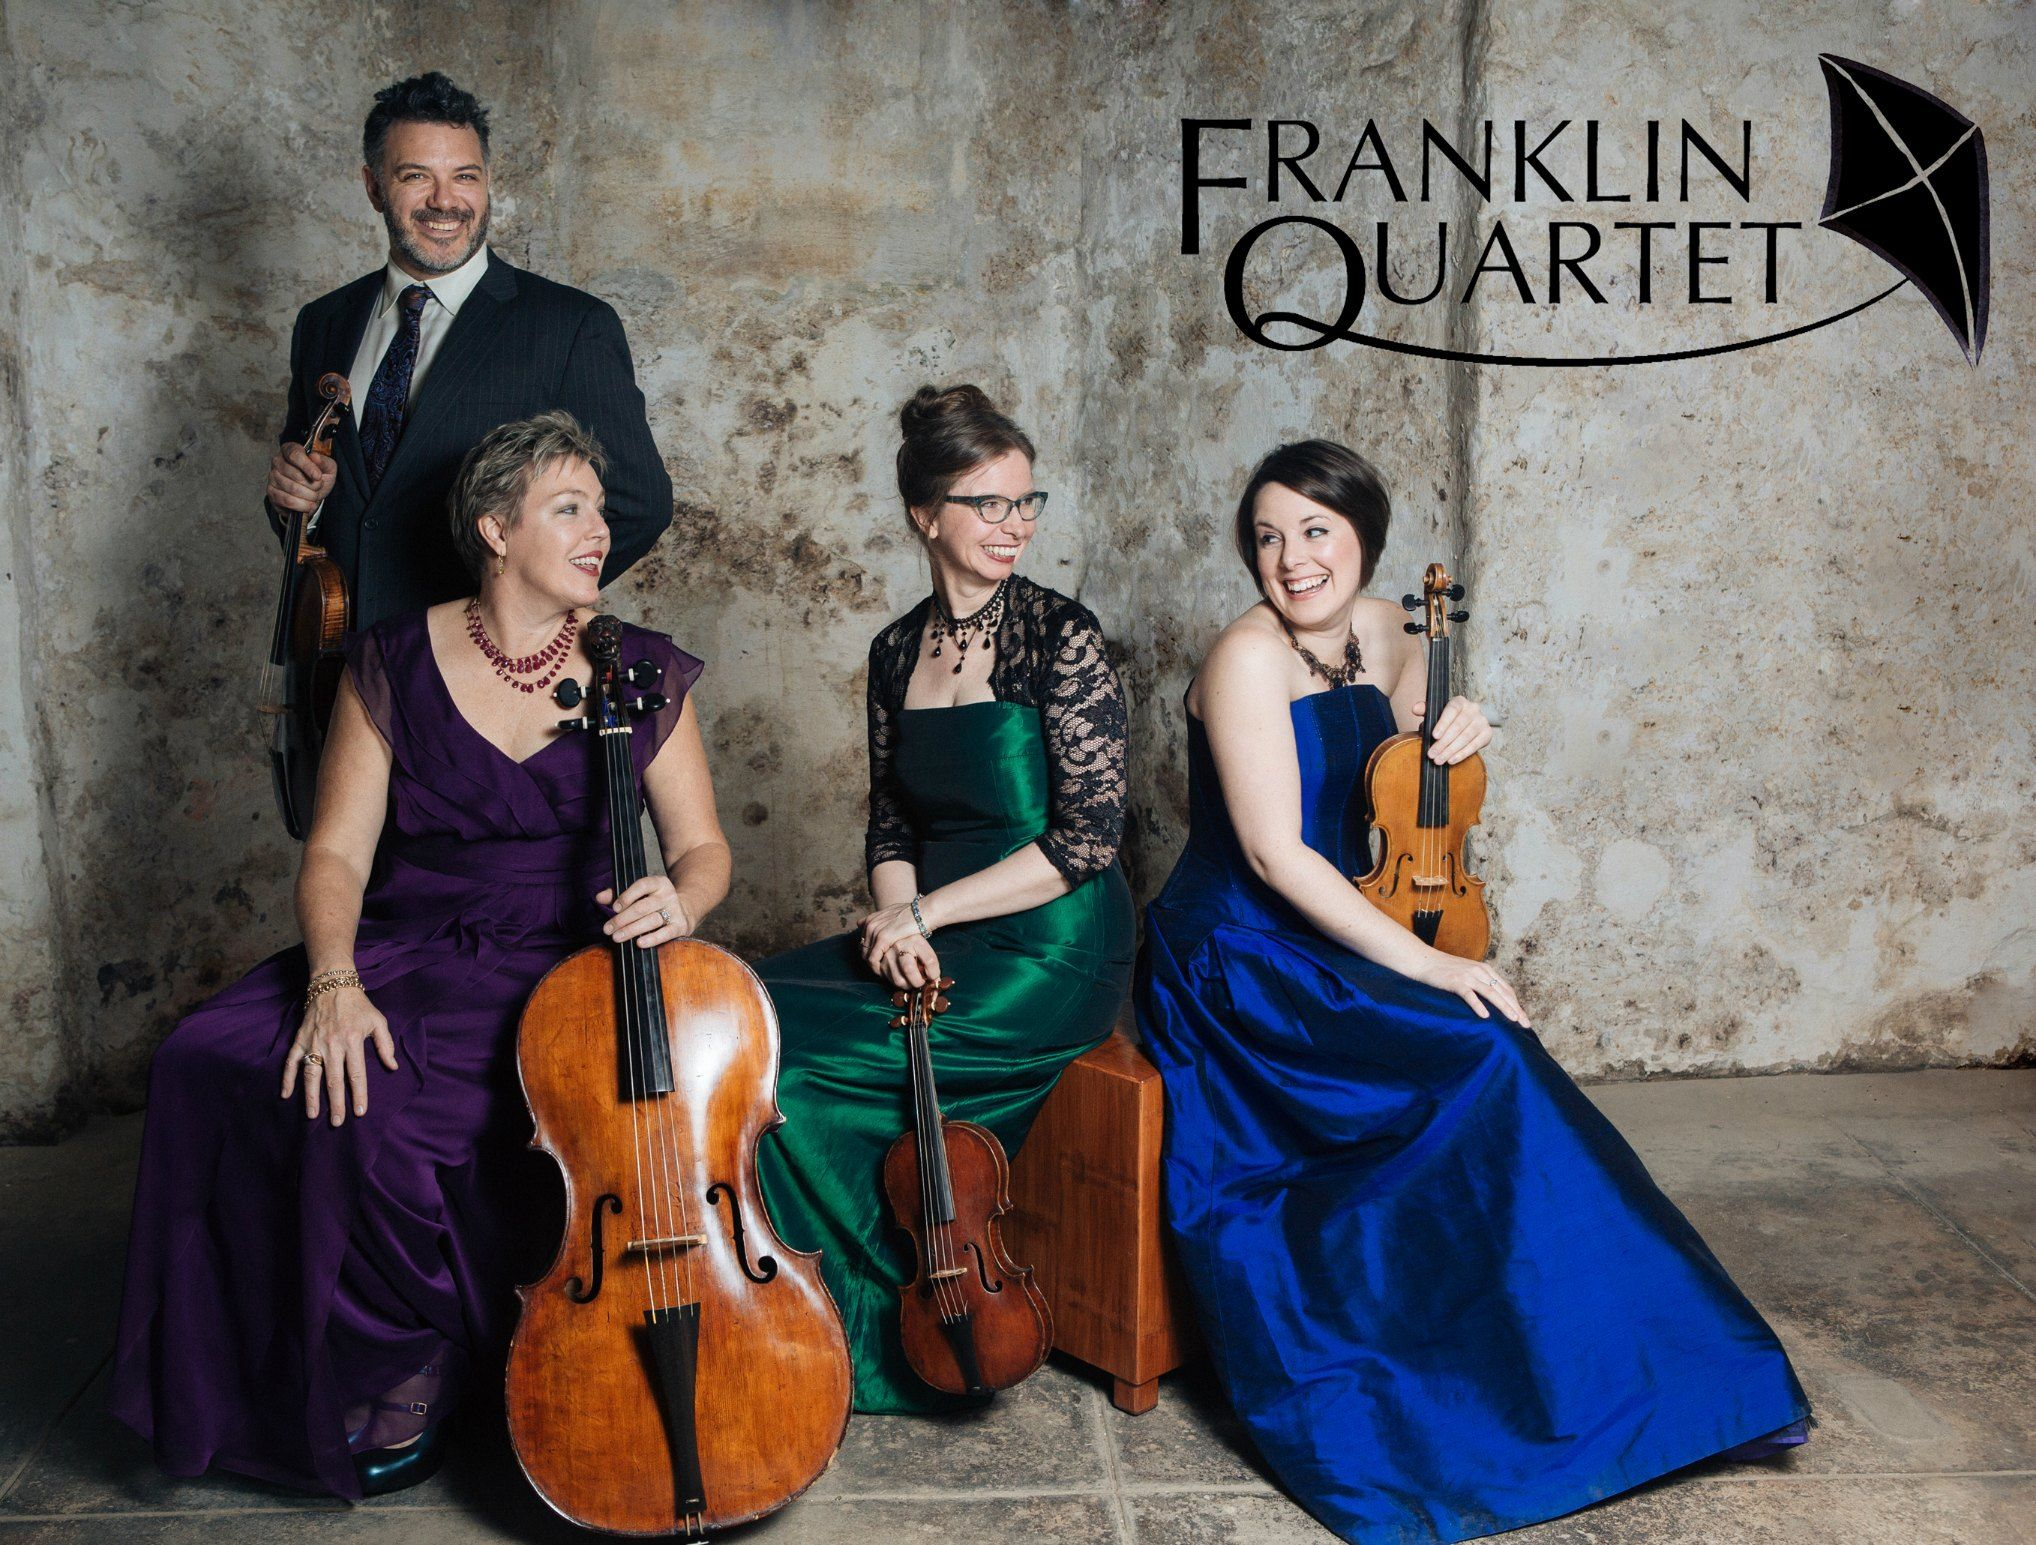 Northern Lights String Quartet : May 3, 2018 - The Franklin Quartet - Gotham Early Music Scene, Inc.